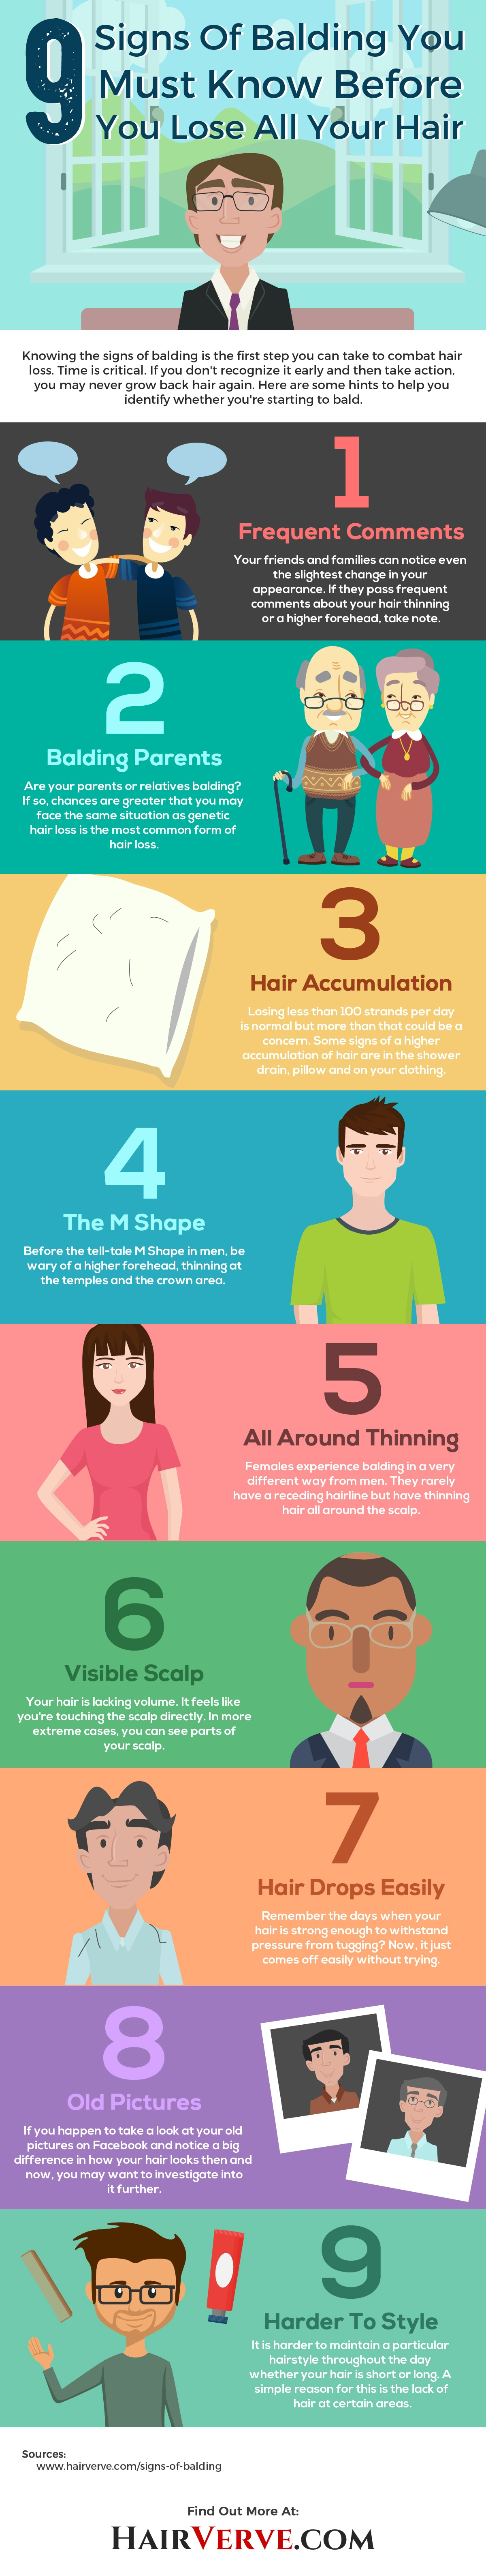 signs of balding infographic